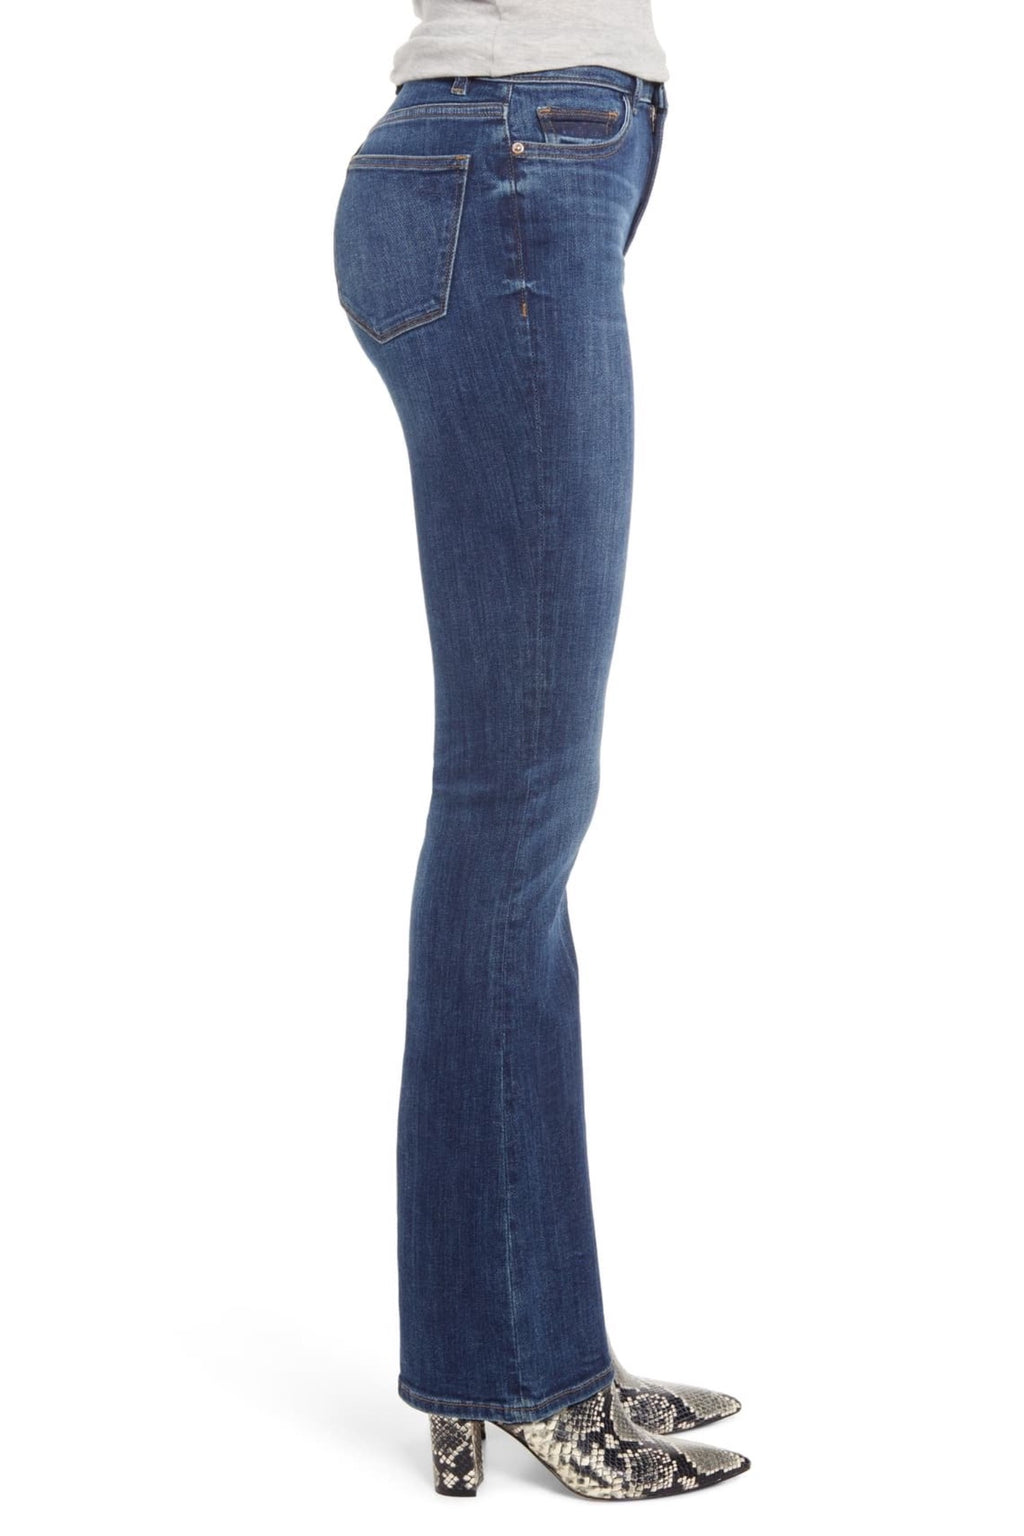 Bridget High Rise Boot Cut in Seaford